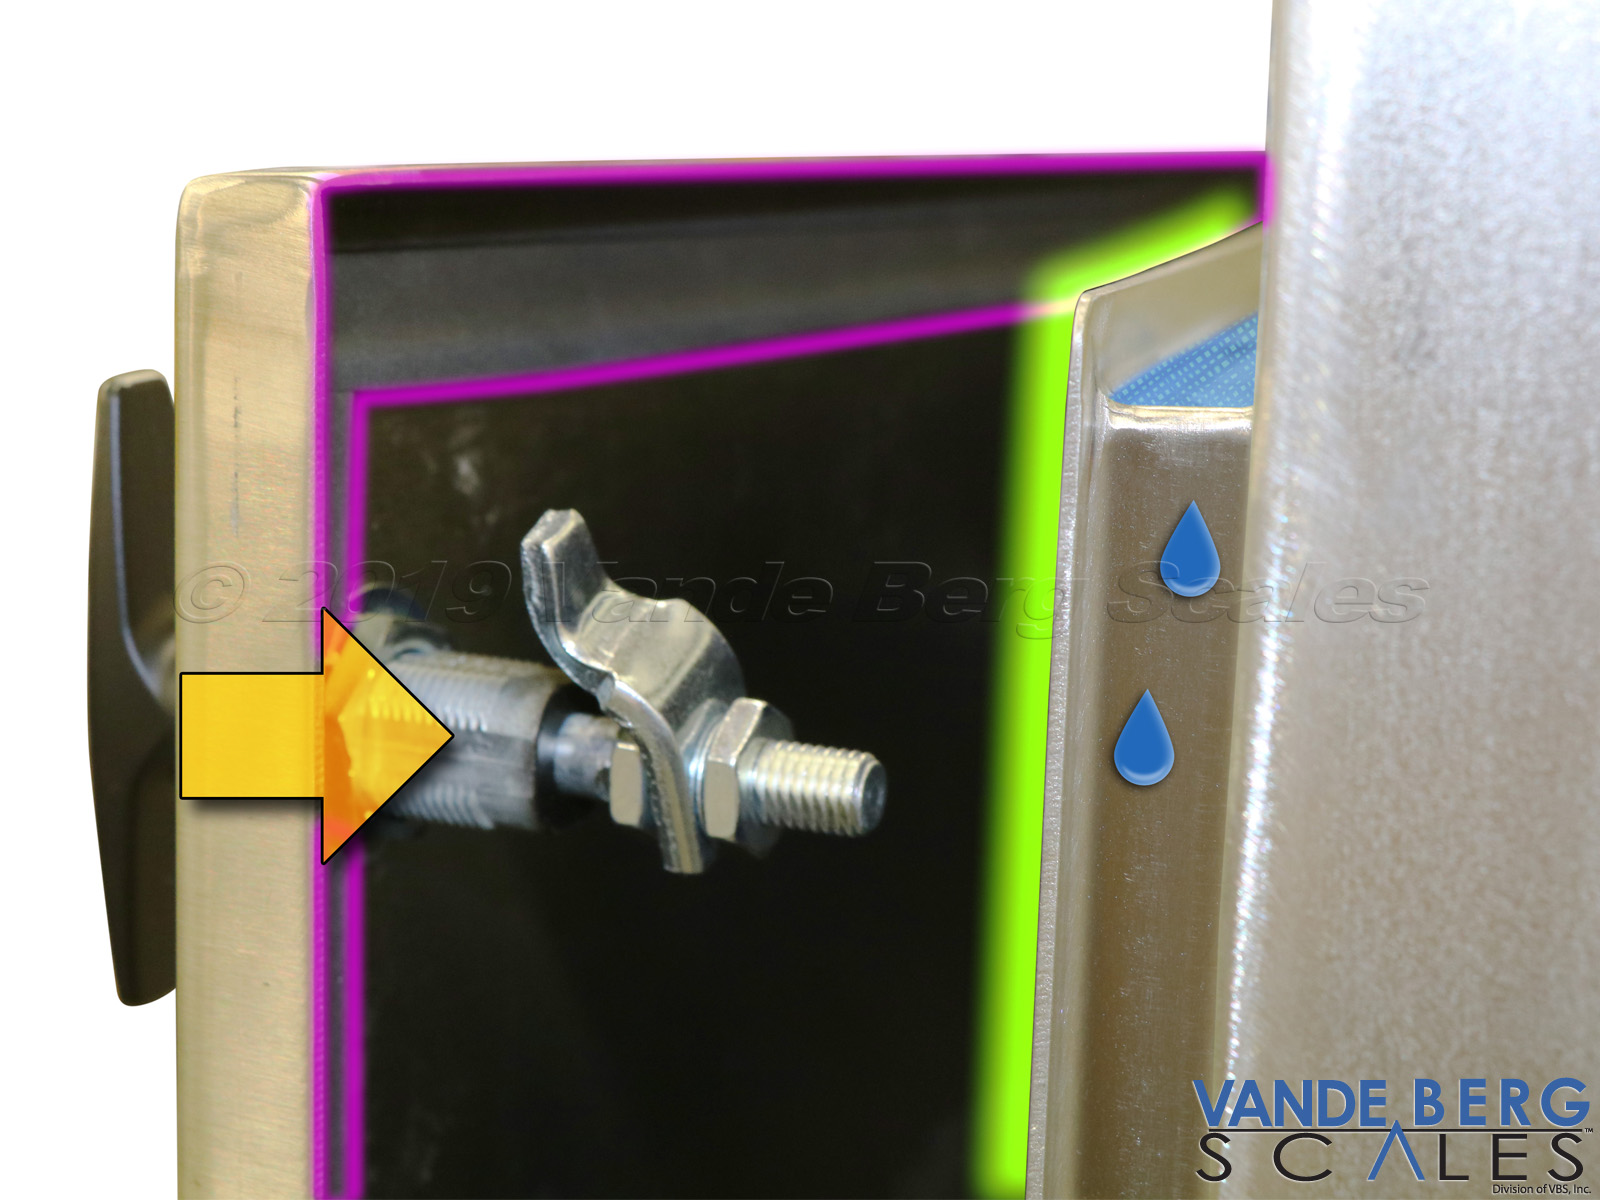 Rain gutter (green) protects the door seal (purple) from direct water spray.